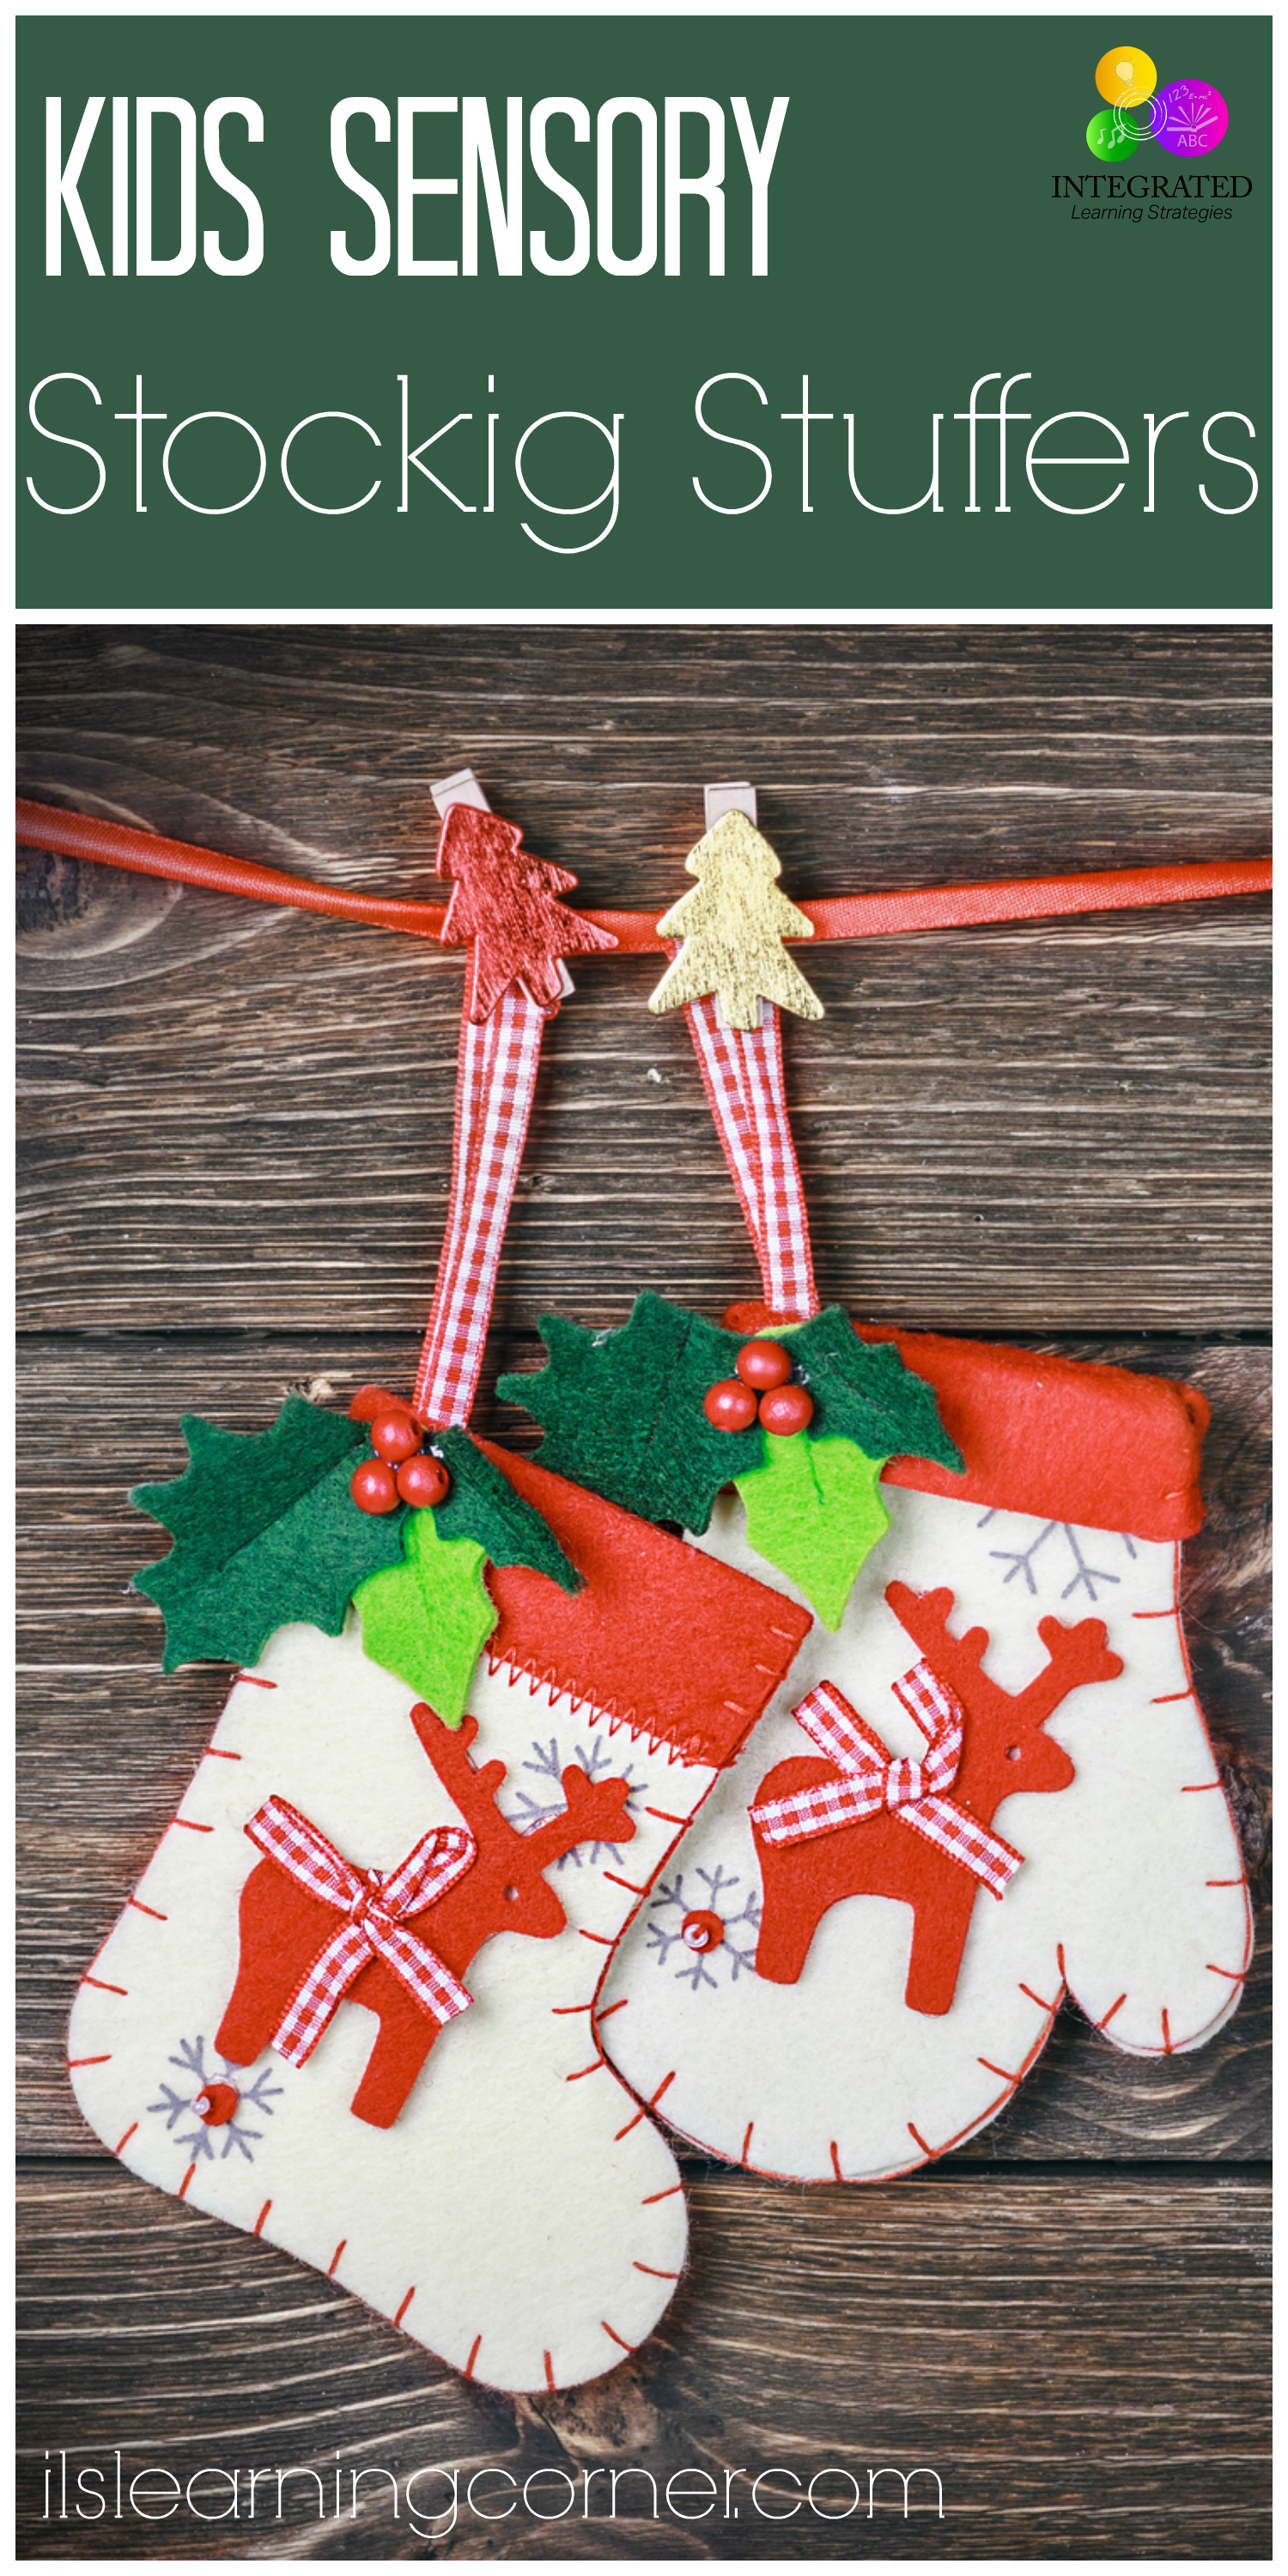 Christmas Stocking Stuffers The Best Sensory Stocking Stuffers For Kids  Integrated Learning